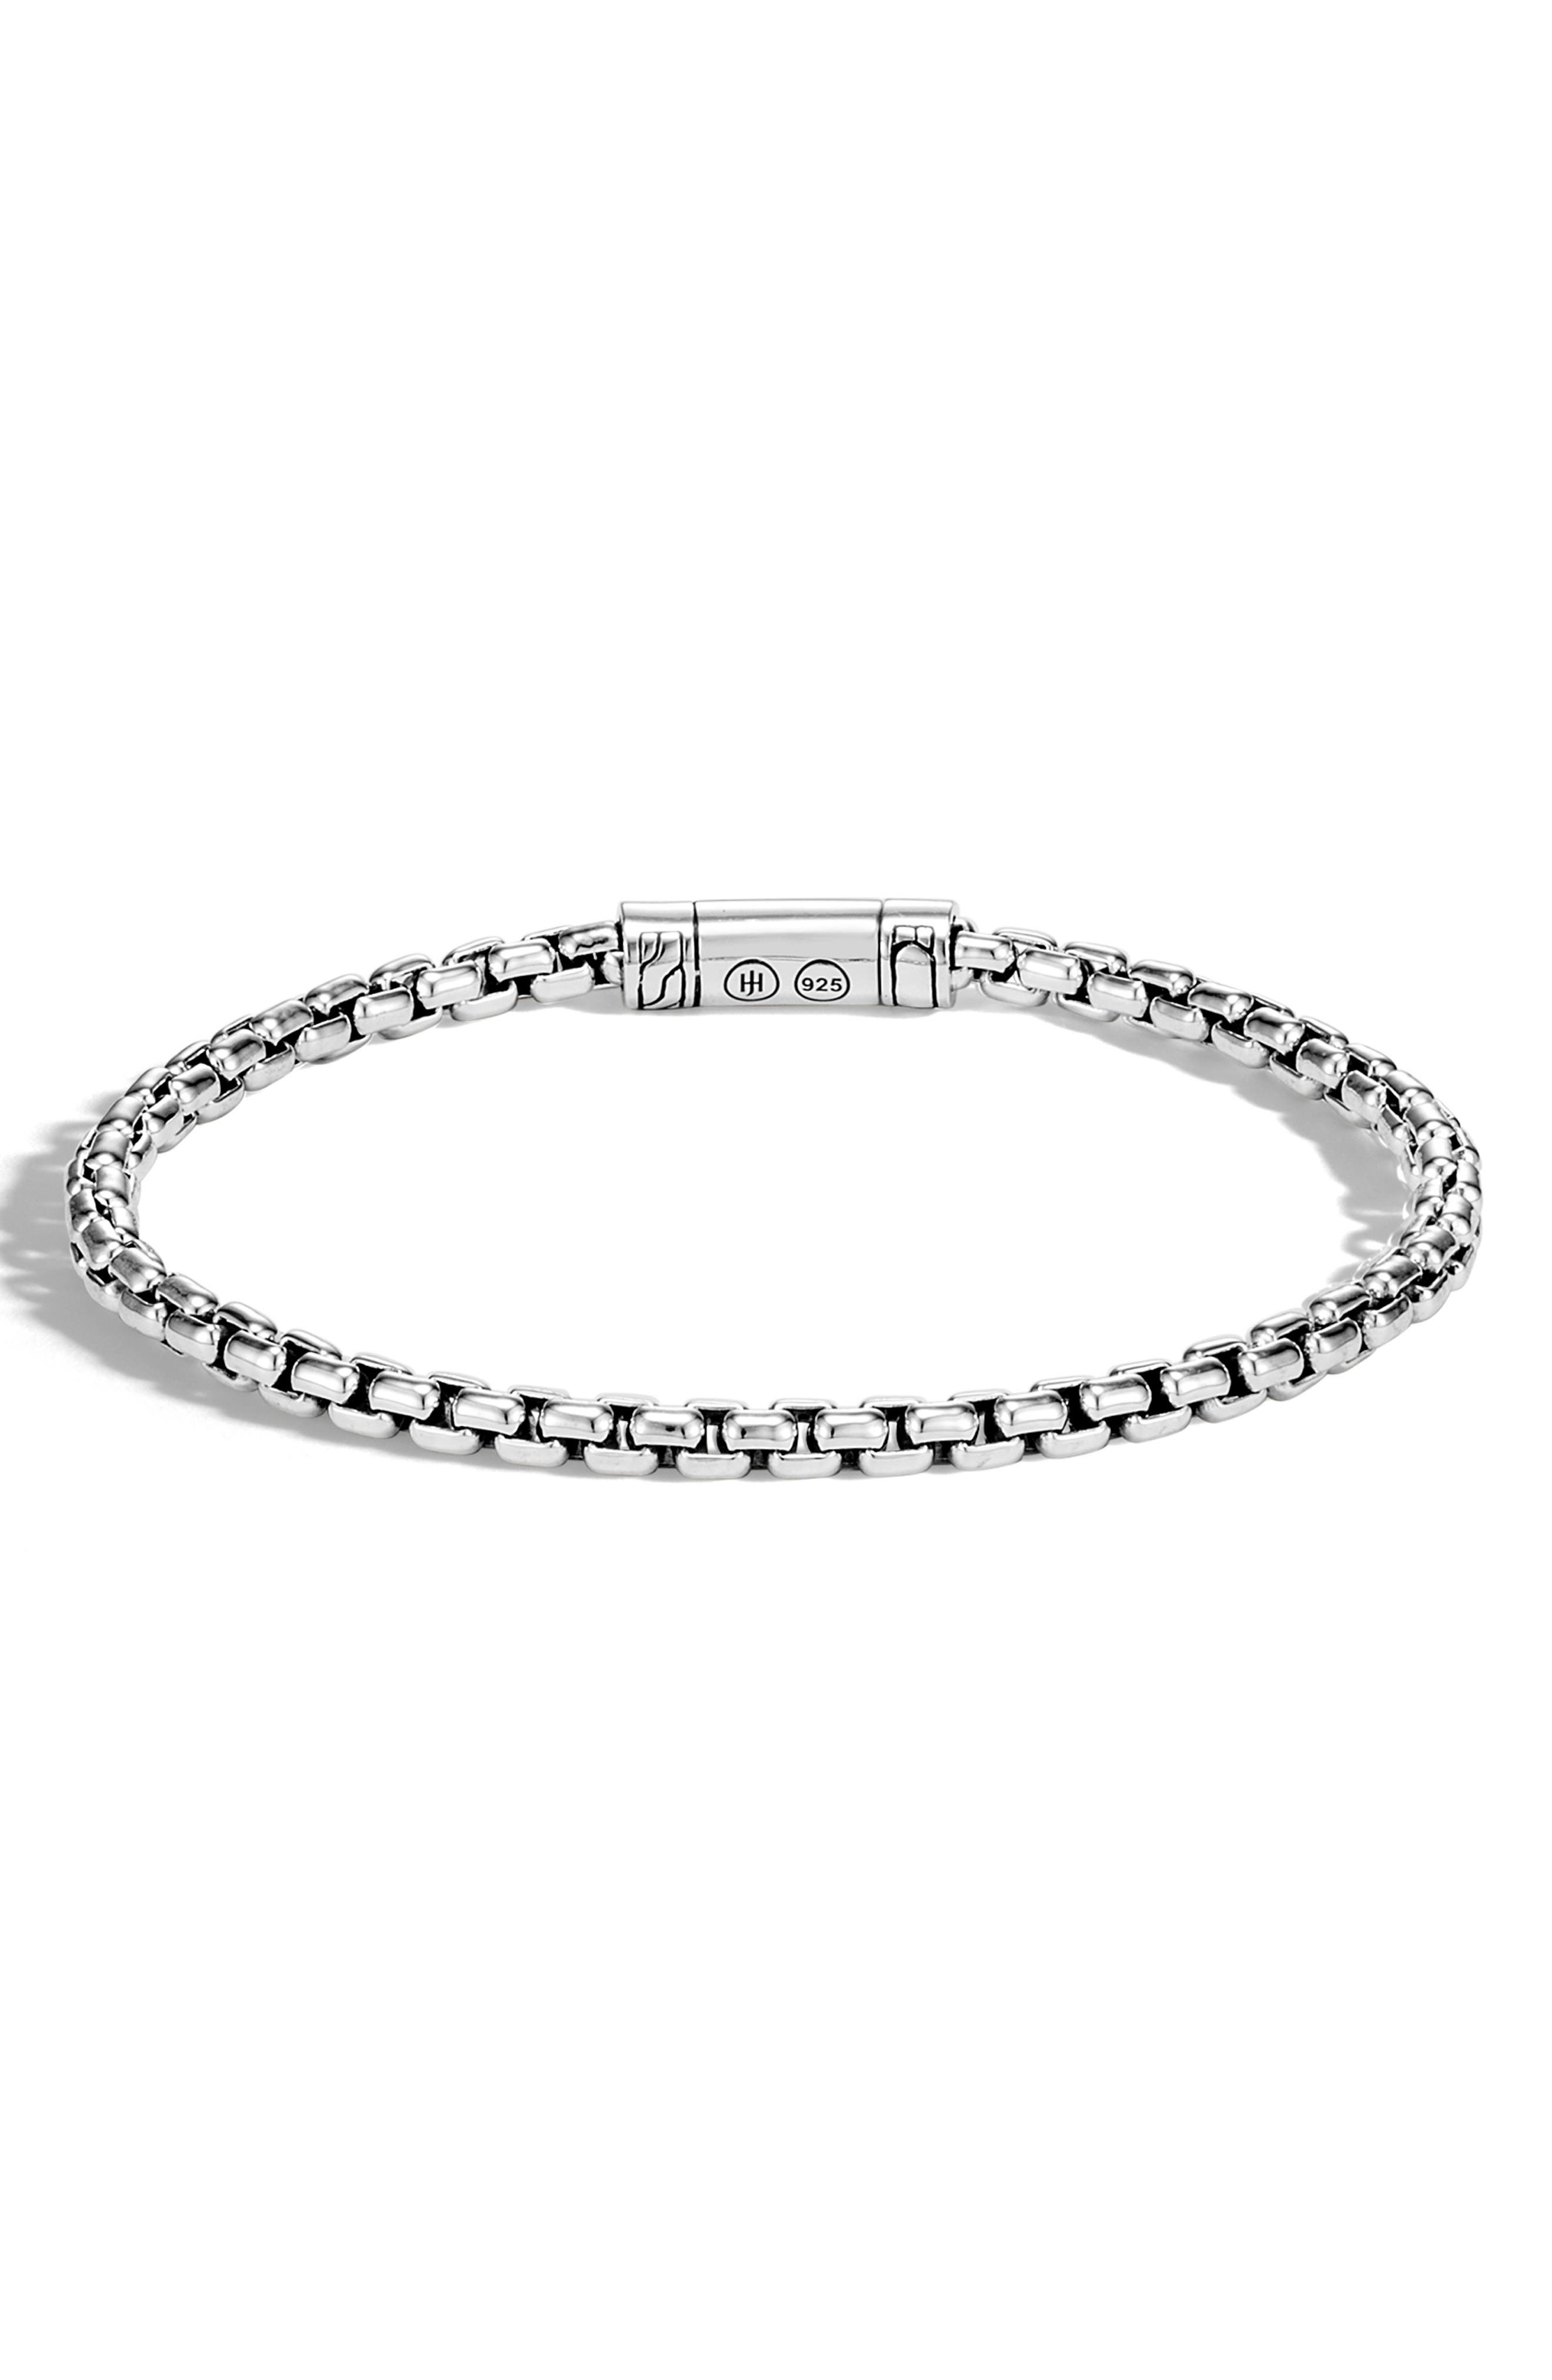 Men's Classic Sterling Silver Box Chain Bracelet,                         Main,                         color, SILVER